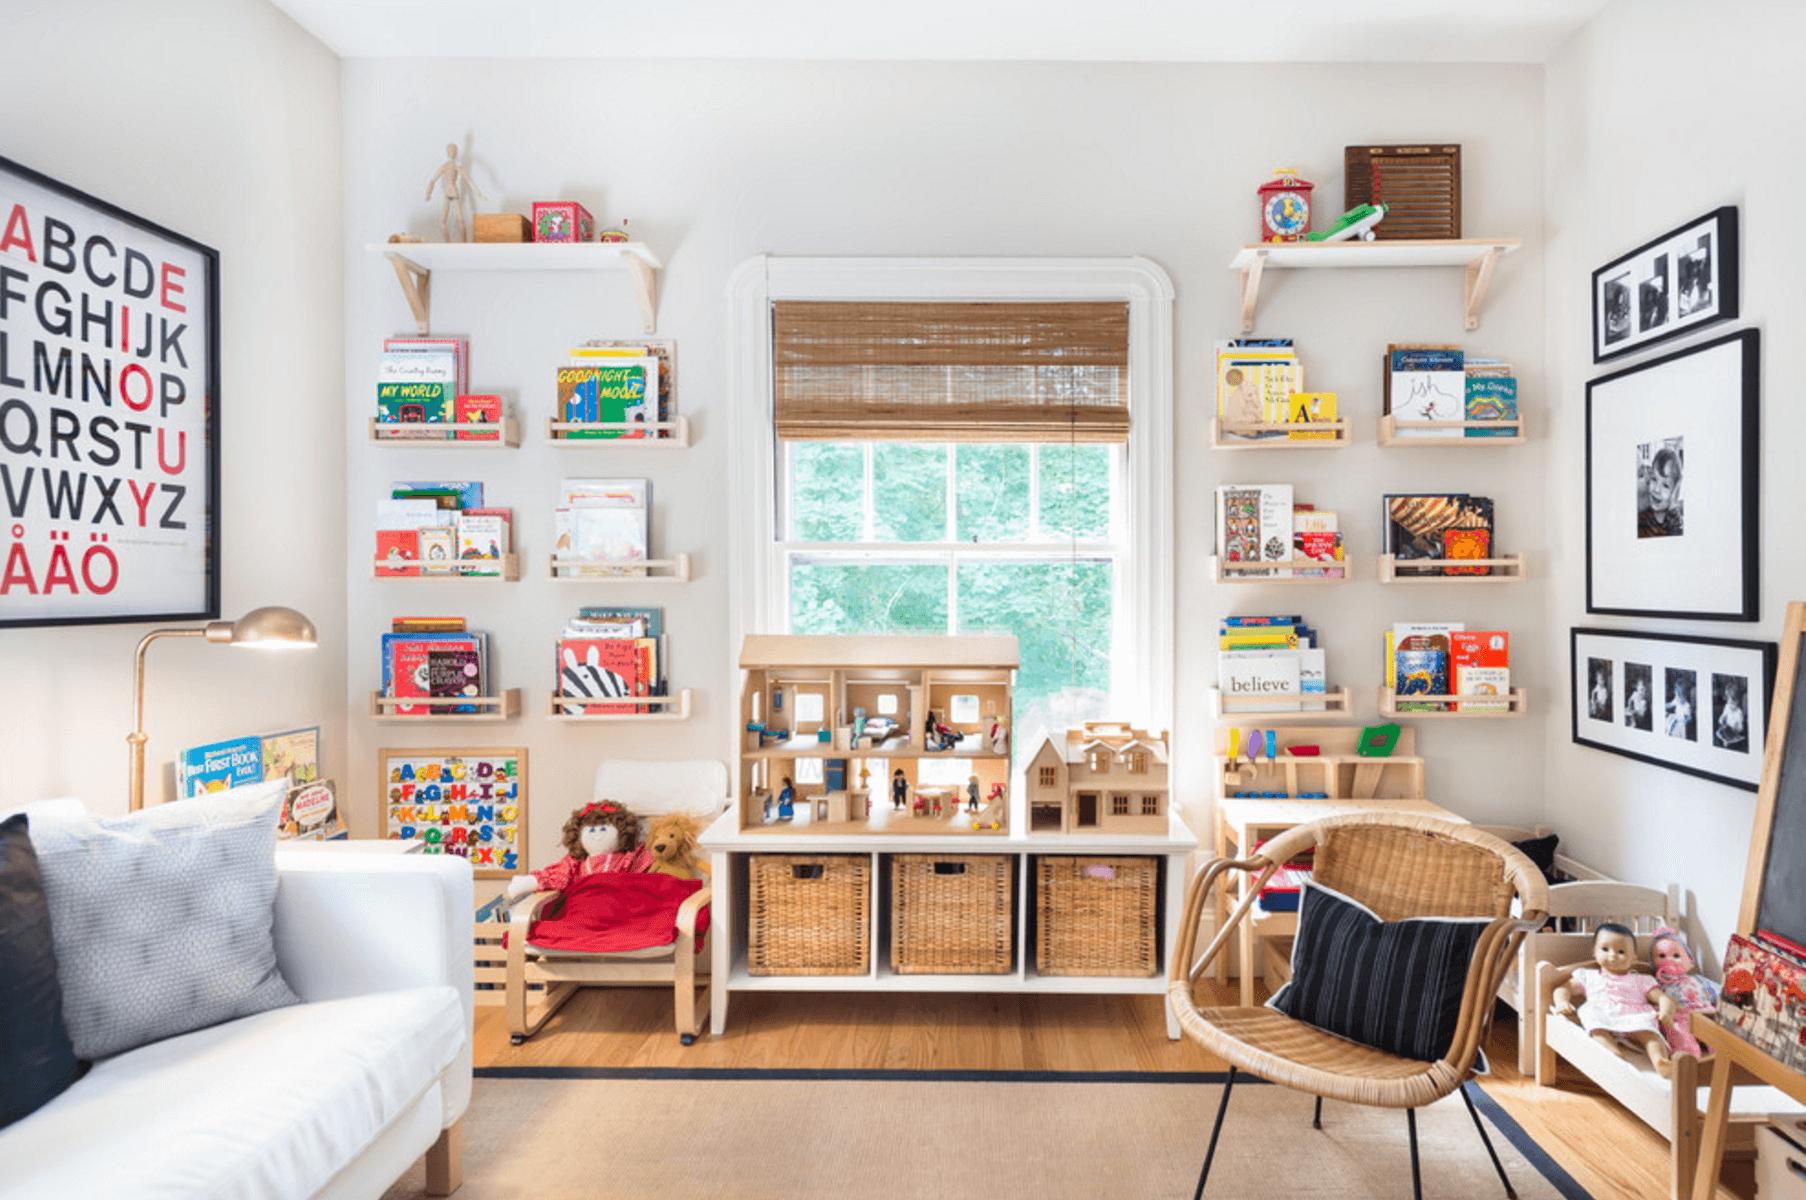 9 Whimsical Ways We Add Color to a Kids Room